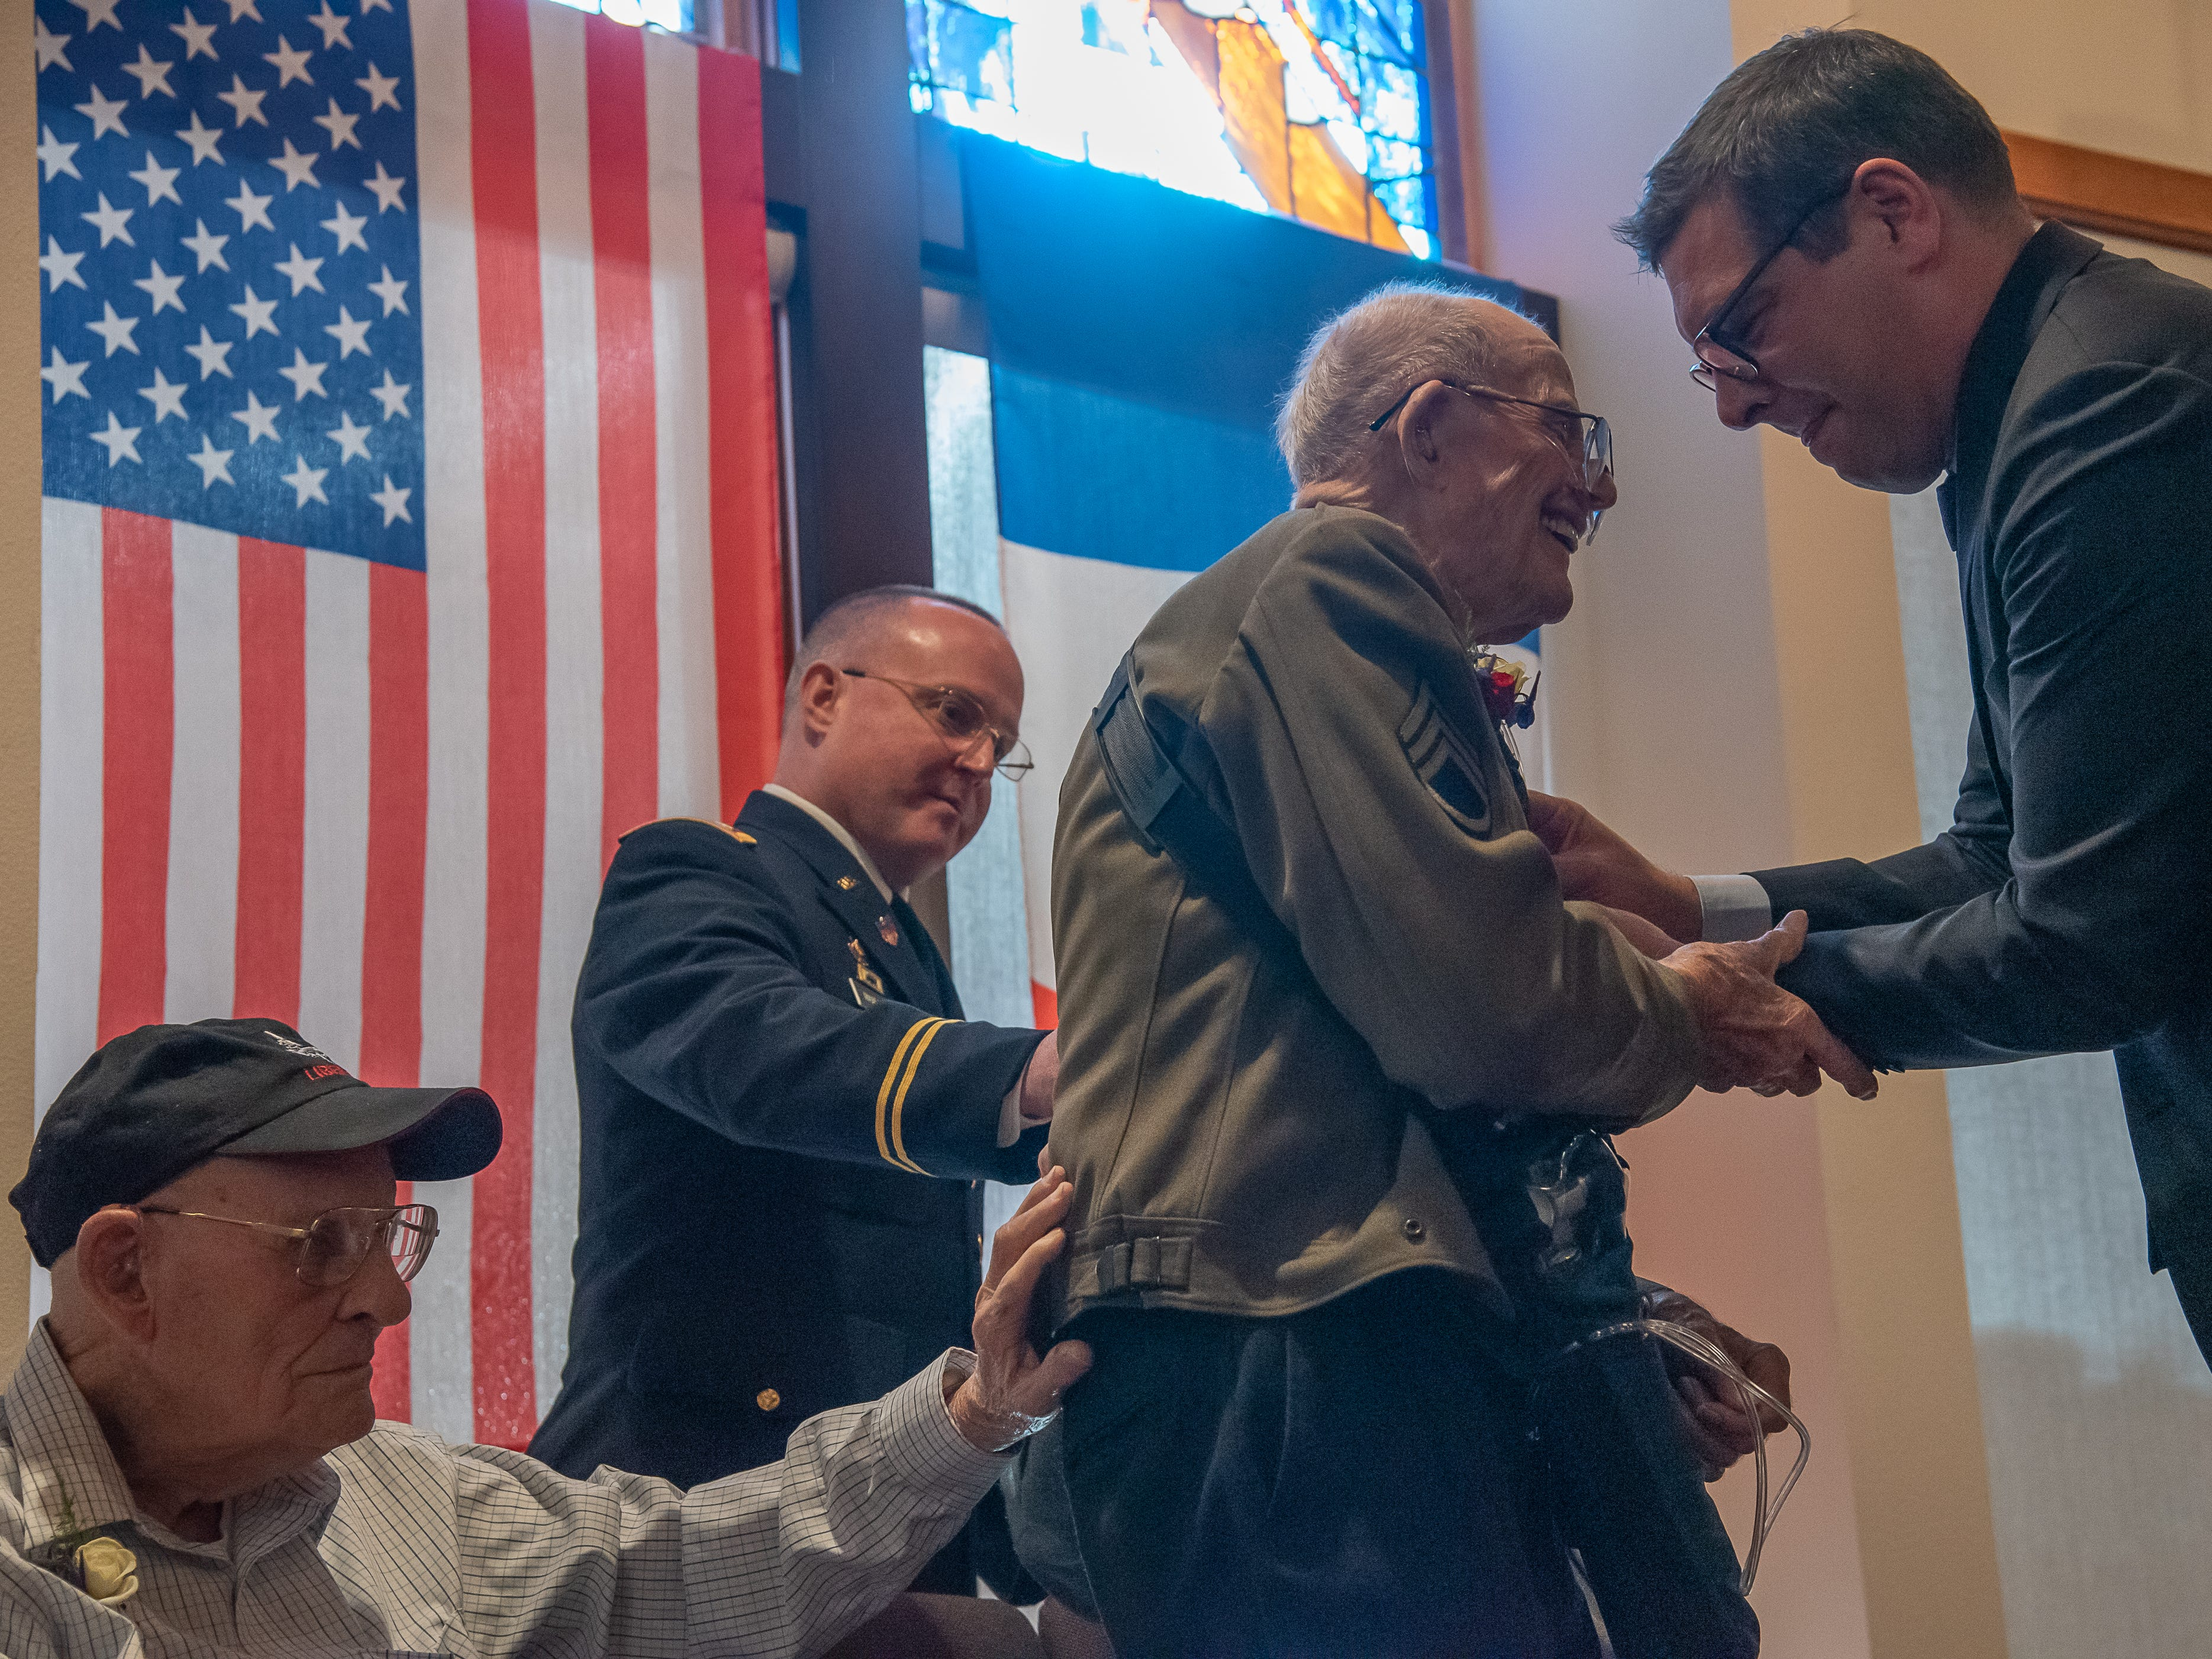 Fort Collins resident and World War II veteran Bill Powell gives fellow veteran Philip Daily a hand of support as he rises to receive the French Legion of Honor Medal from Christophe Lemoine, Consulate of France, on Monday, February 4, 2019, during a ceremony at the Good Samaritan Water Valley Resort in Windsor. Ltc. Frank Huffman stands behind Daily, also offering a hand of support.